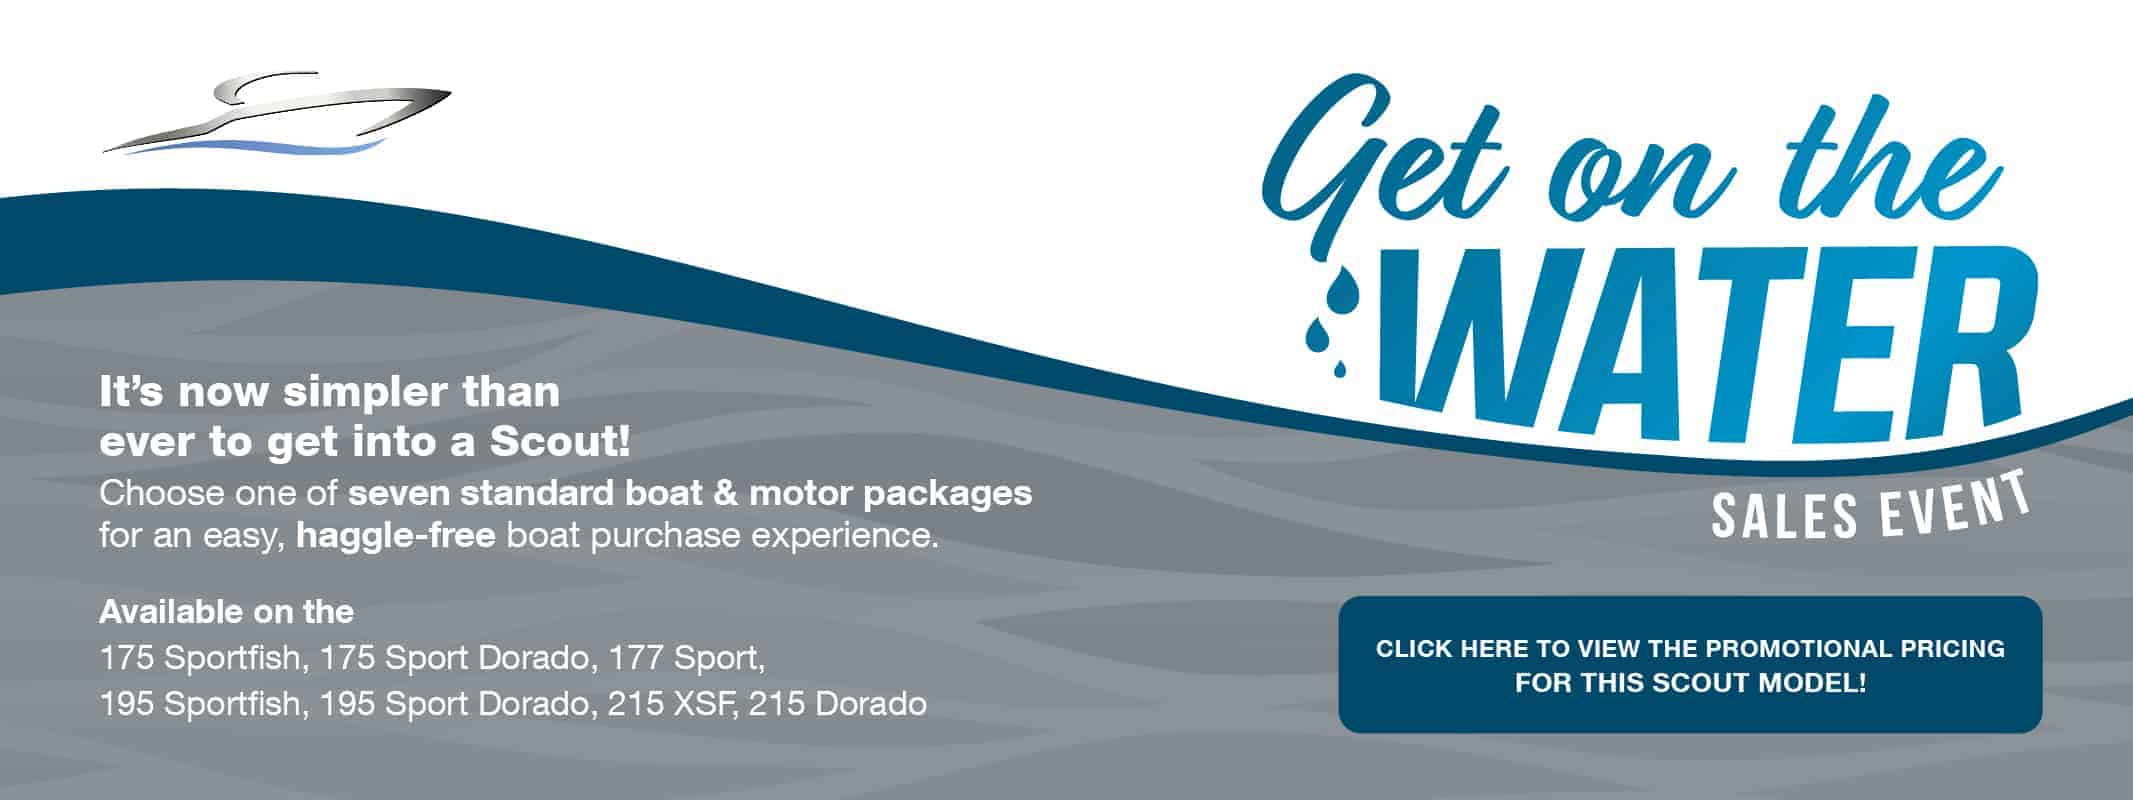 Get on the Water Sales Event